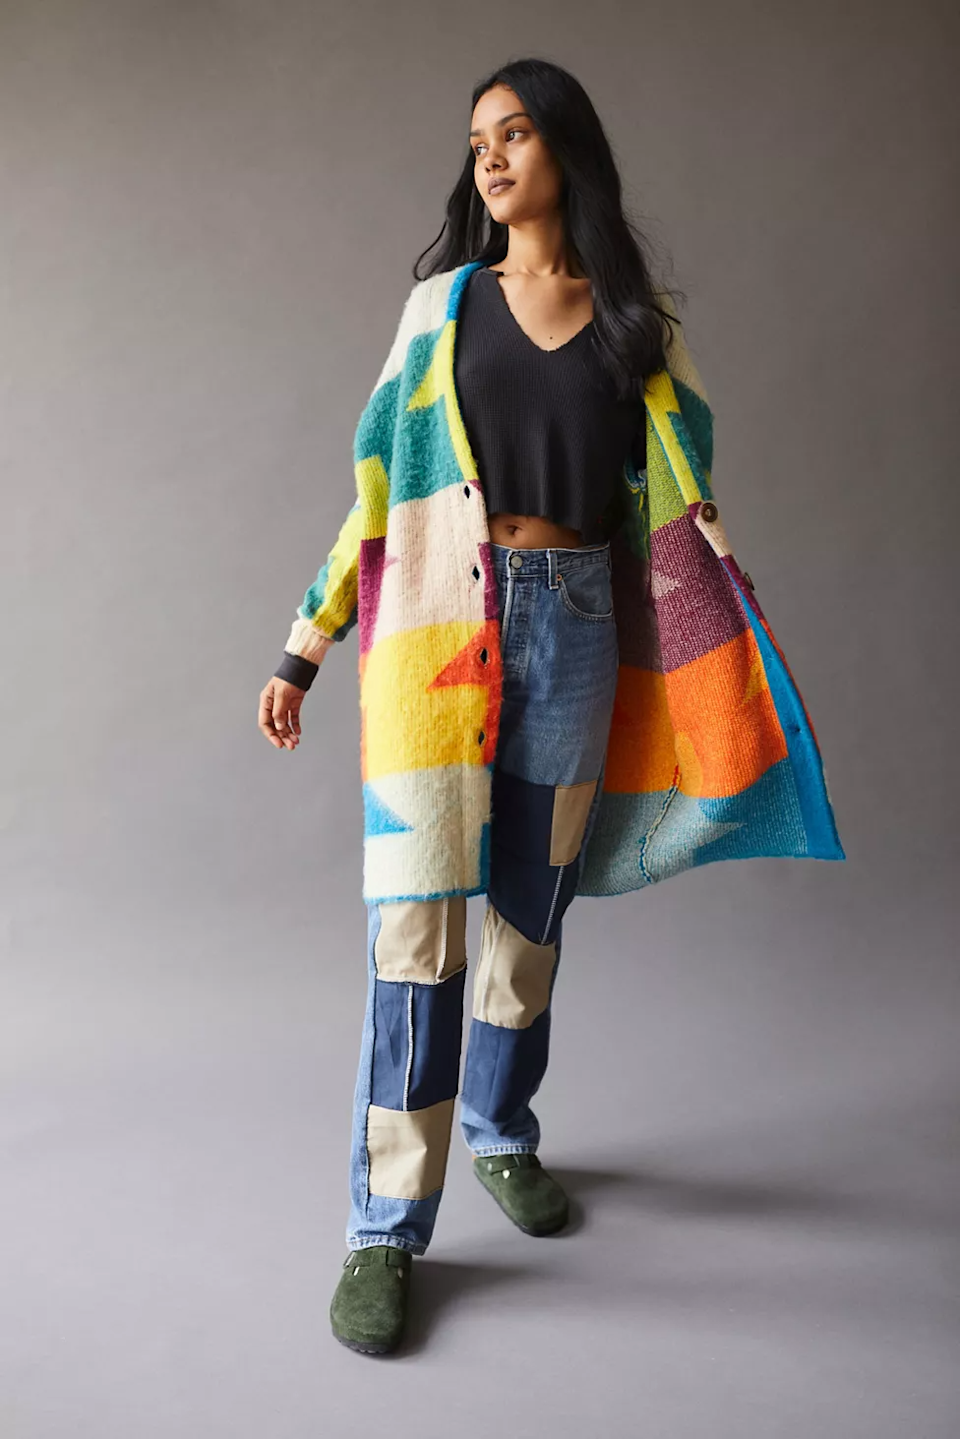 """<br><br><strong>BDG</strong> Presley Longline Cardigan, $, available at <a href=""""https://go.skimresources.com/?id=30283X879131&url=https%3A%2F%2Fwww.urbanoutfitters.com%2Fshop%2Fbdg-presley-longline-cardigan"""" rel=""""nofollow noopener"""" target=""""_blank"""" data-ylk=""""slk:Urban Outfitters"""" class=""""link rapid-noclick-resp"""">Urban Outfitters</a>"""